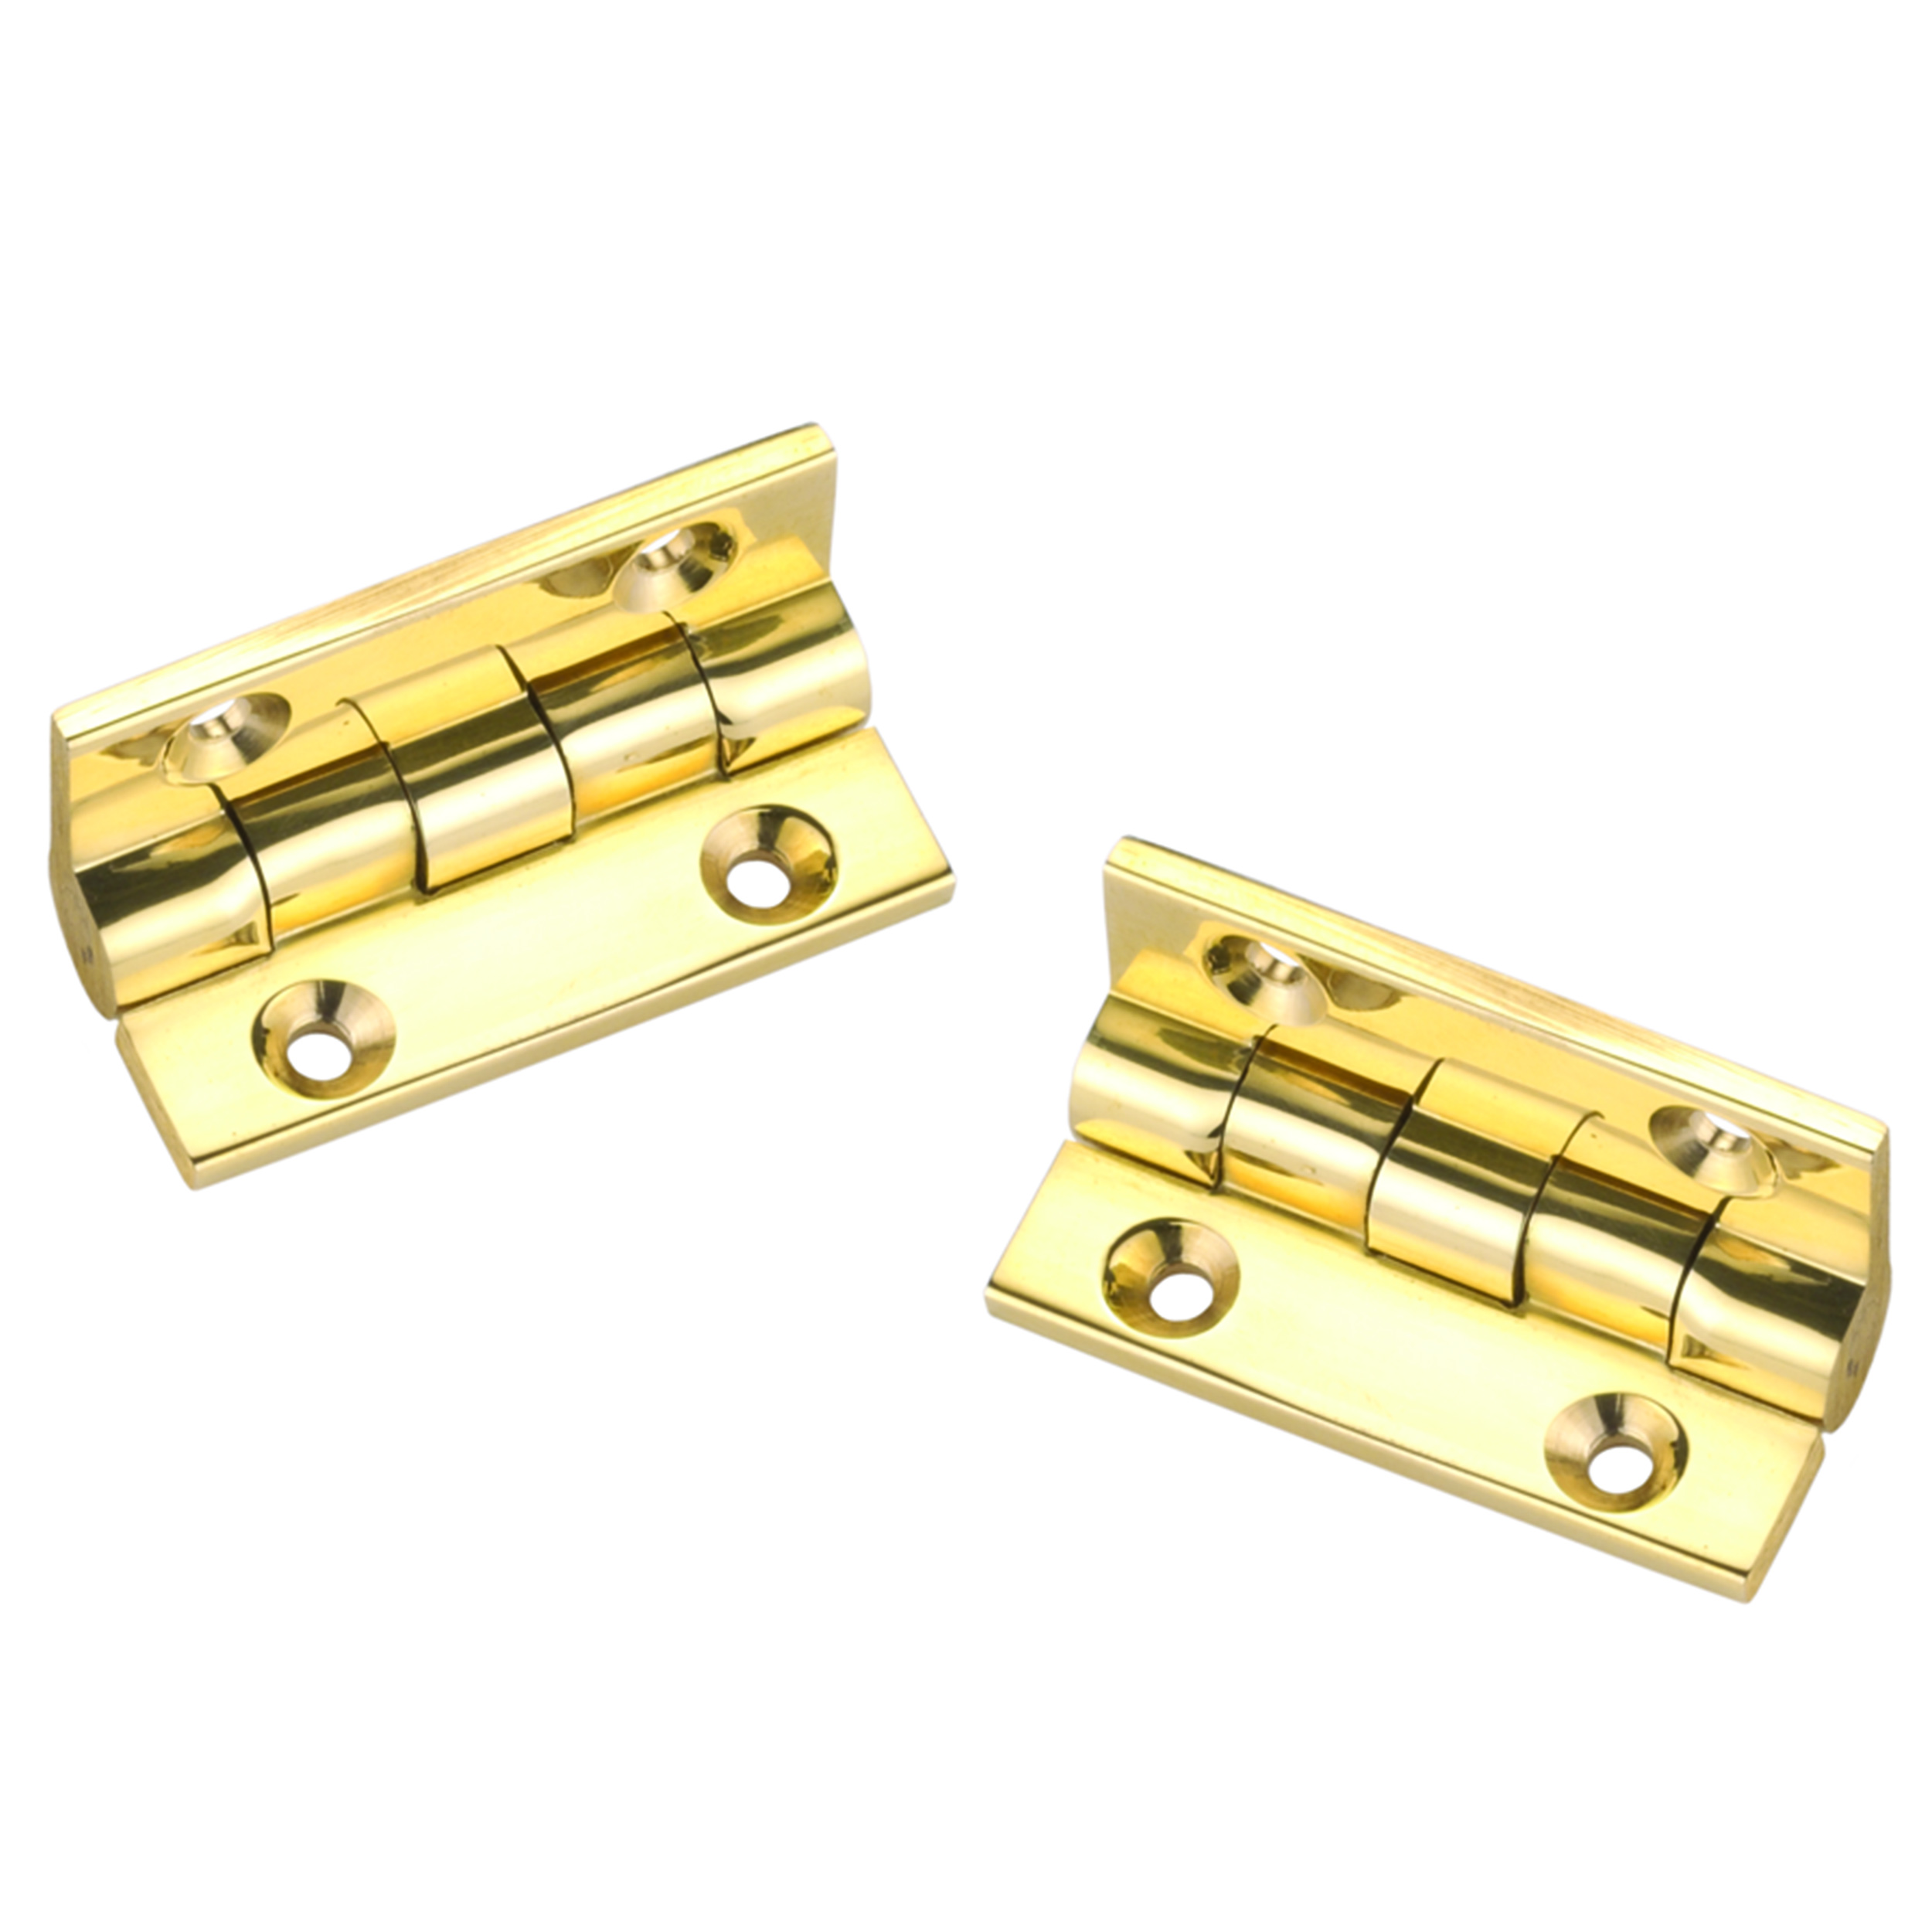 "Stop Hinge Polished Brass 1-1/2"" X 1-1/8"" Pair"